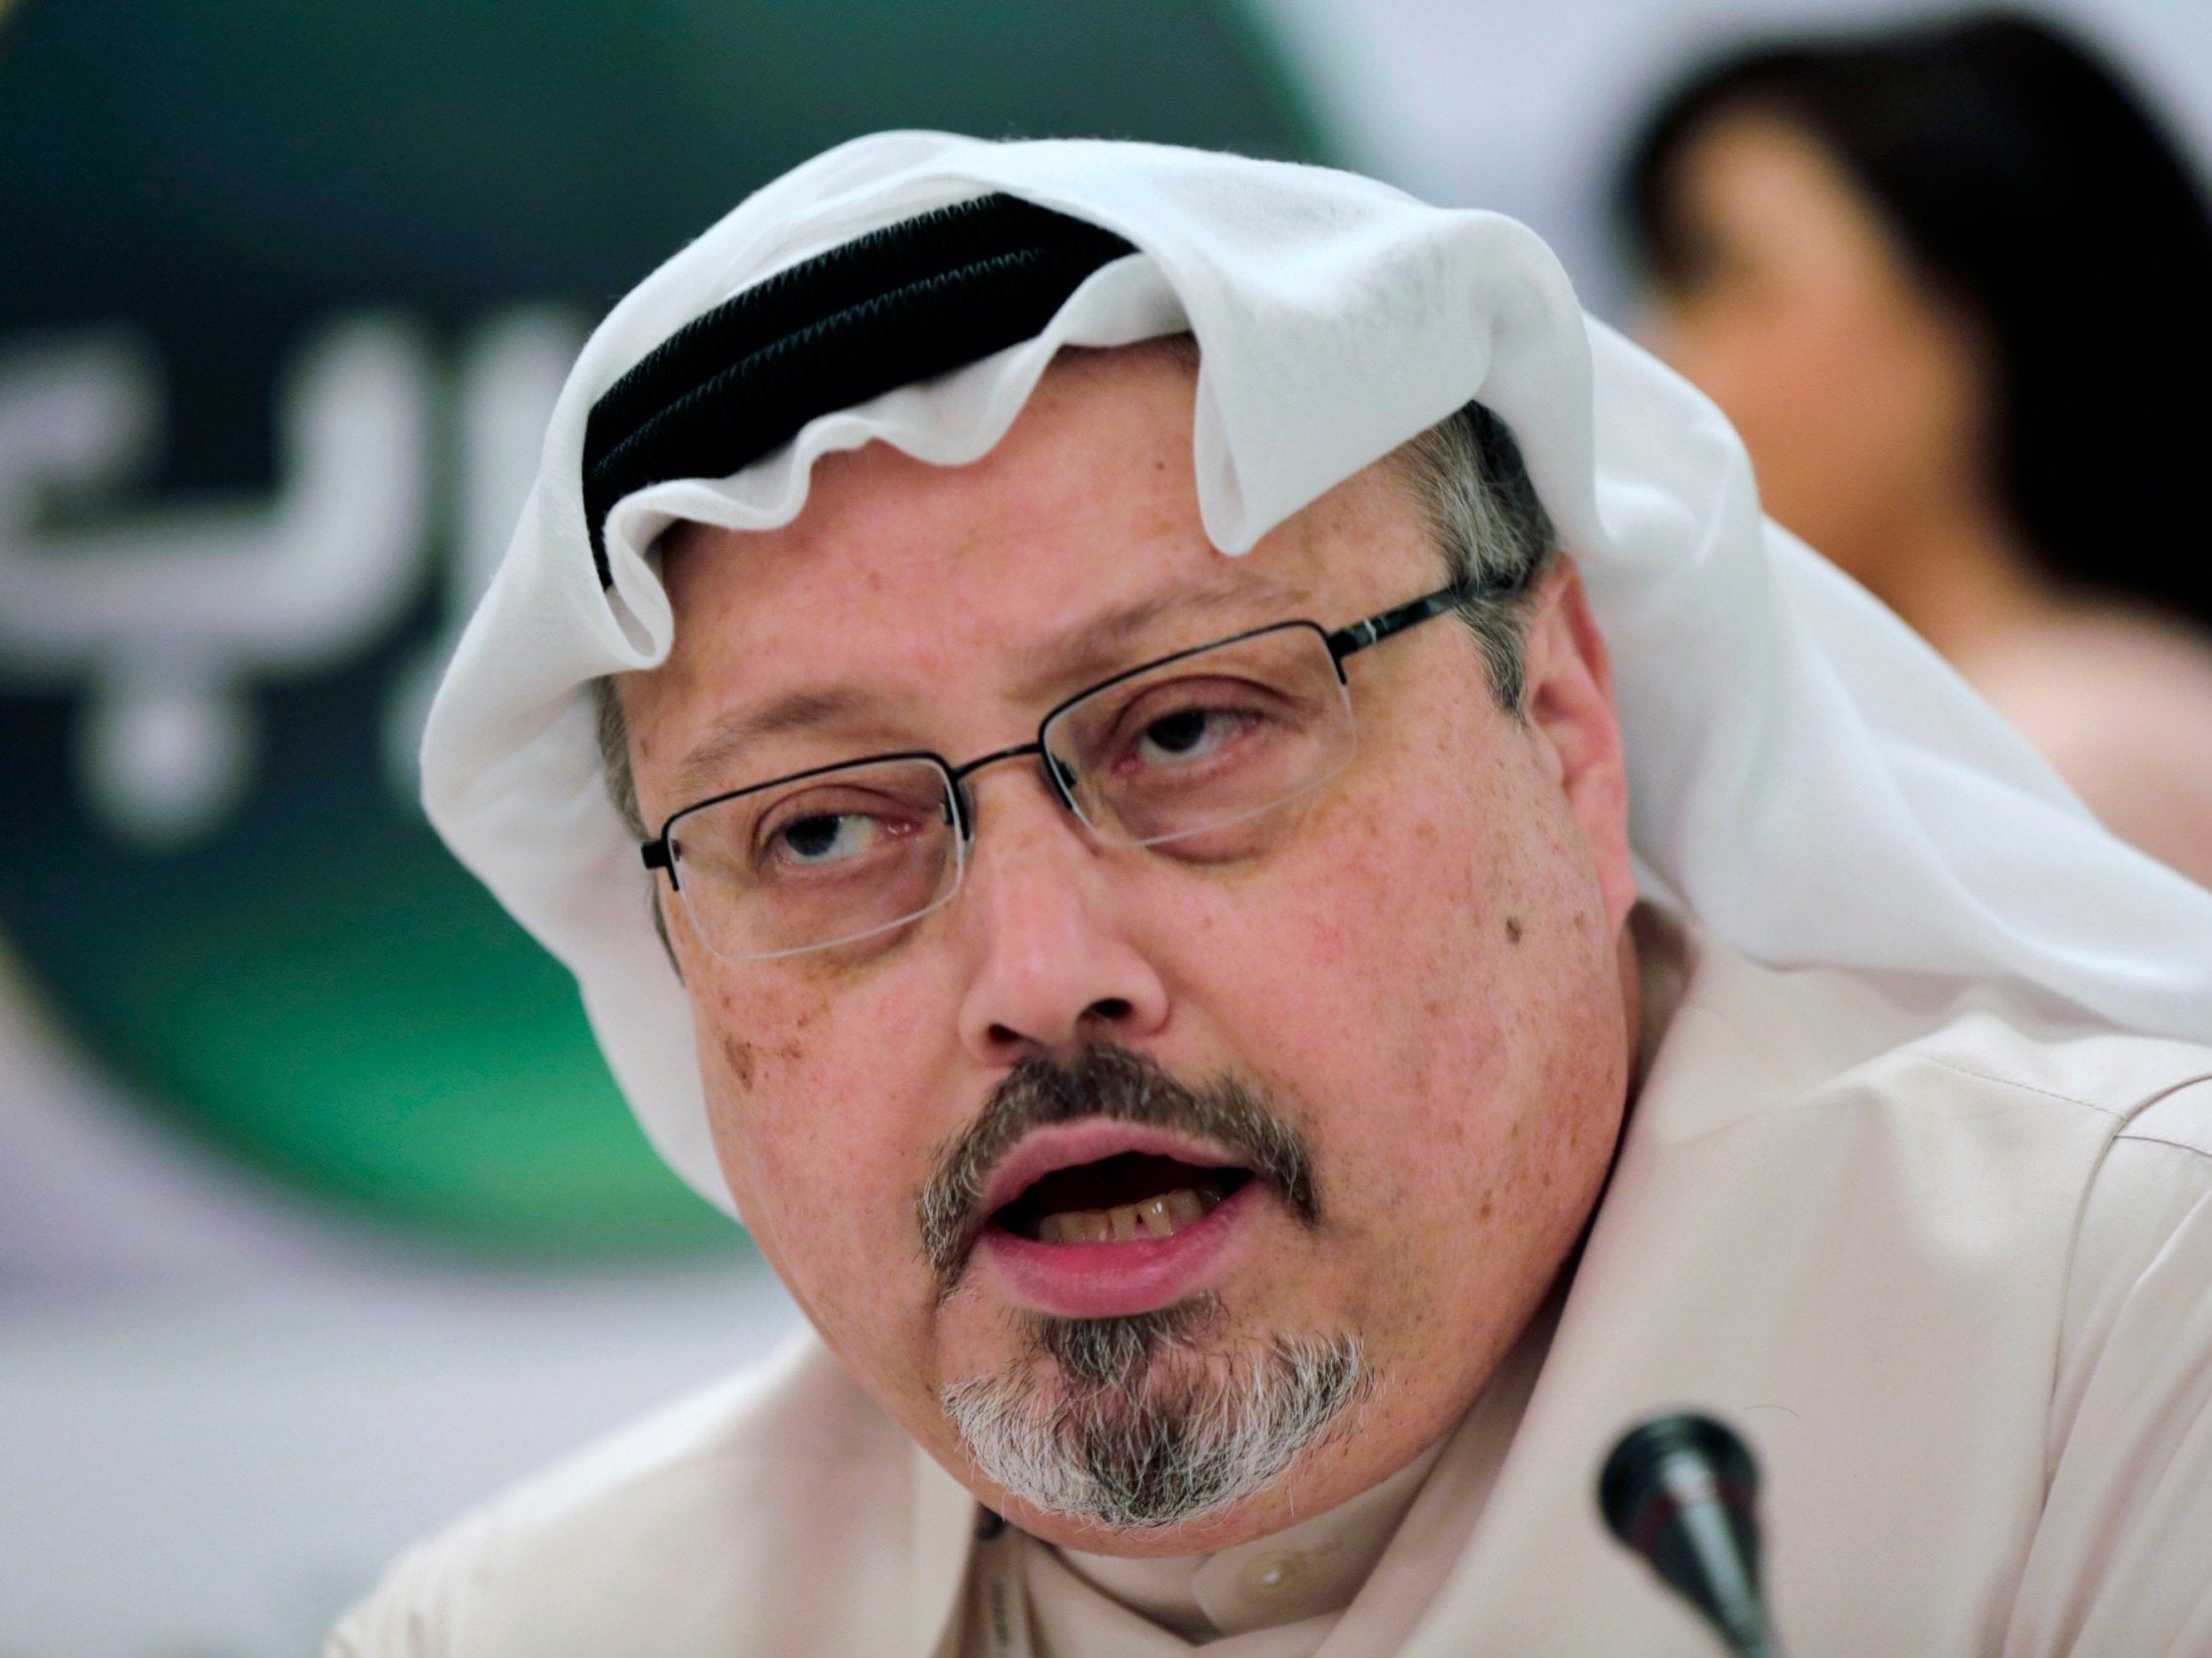 Jamal Khashoggi's murder 'planned and perpetrated by Saudi officials', says UN human rights expert